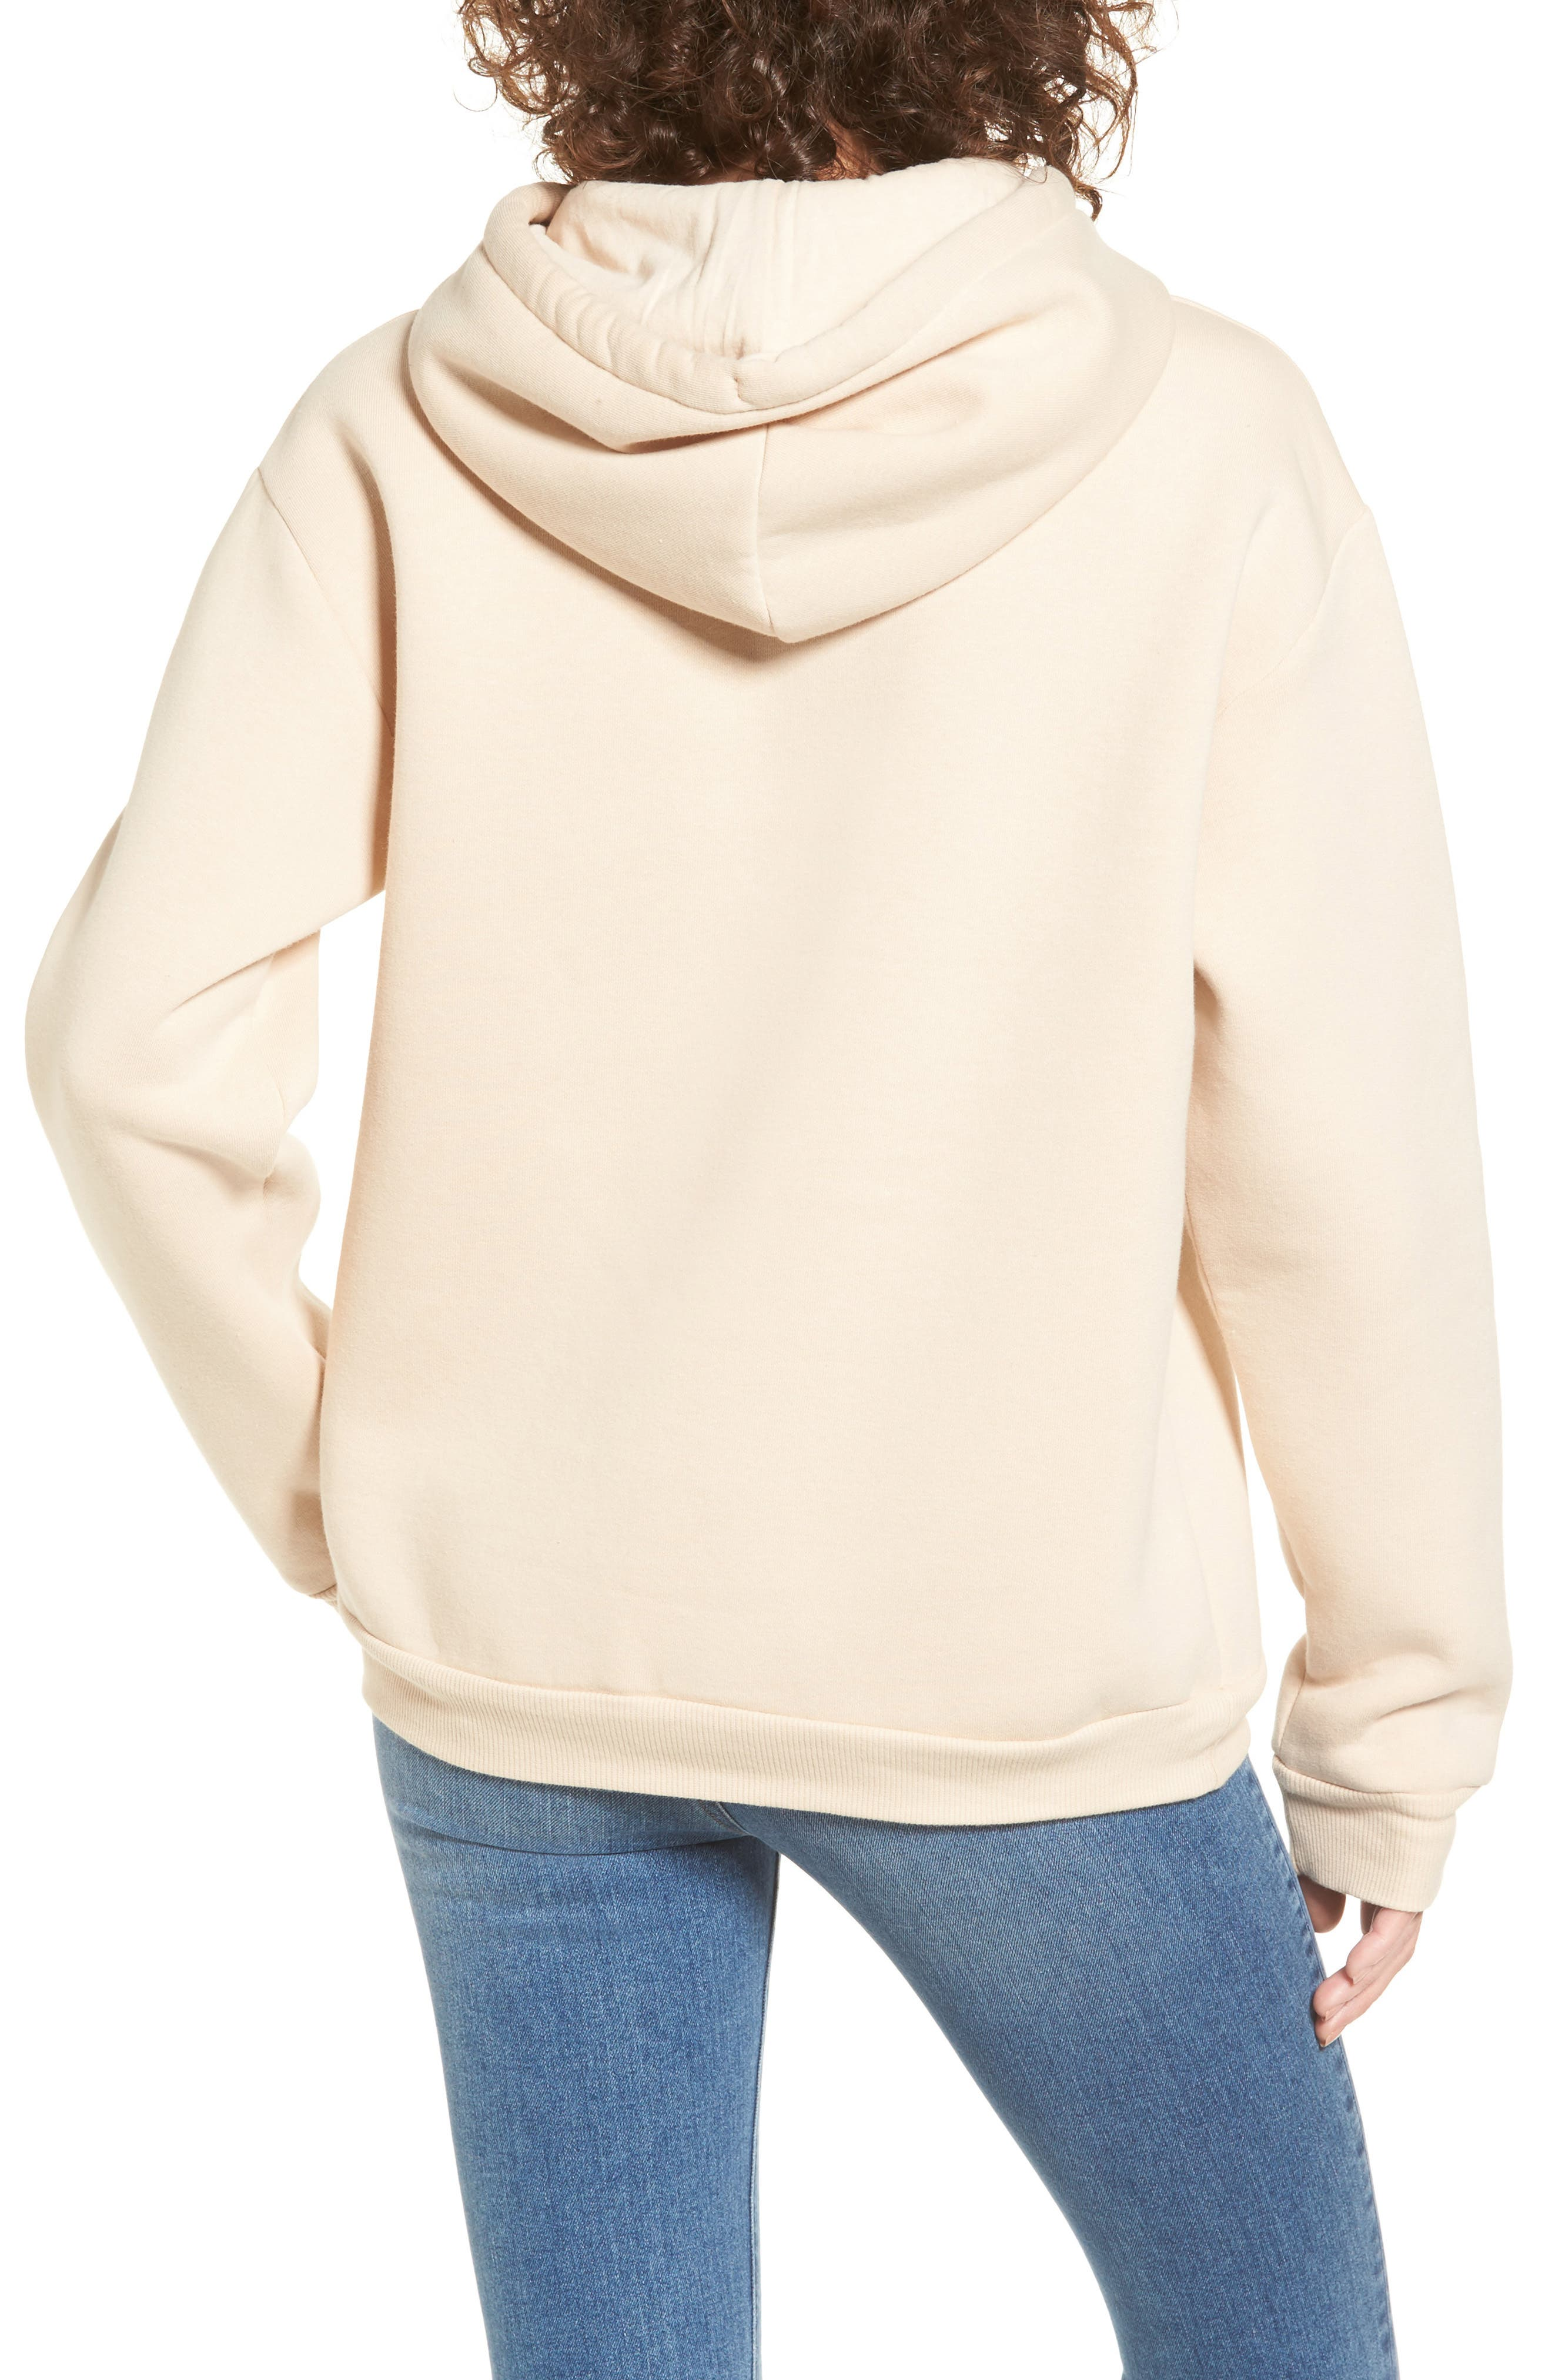 Oversize Hoodie,                             Alternate thumbnail 2, color,                             250